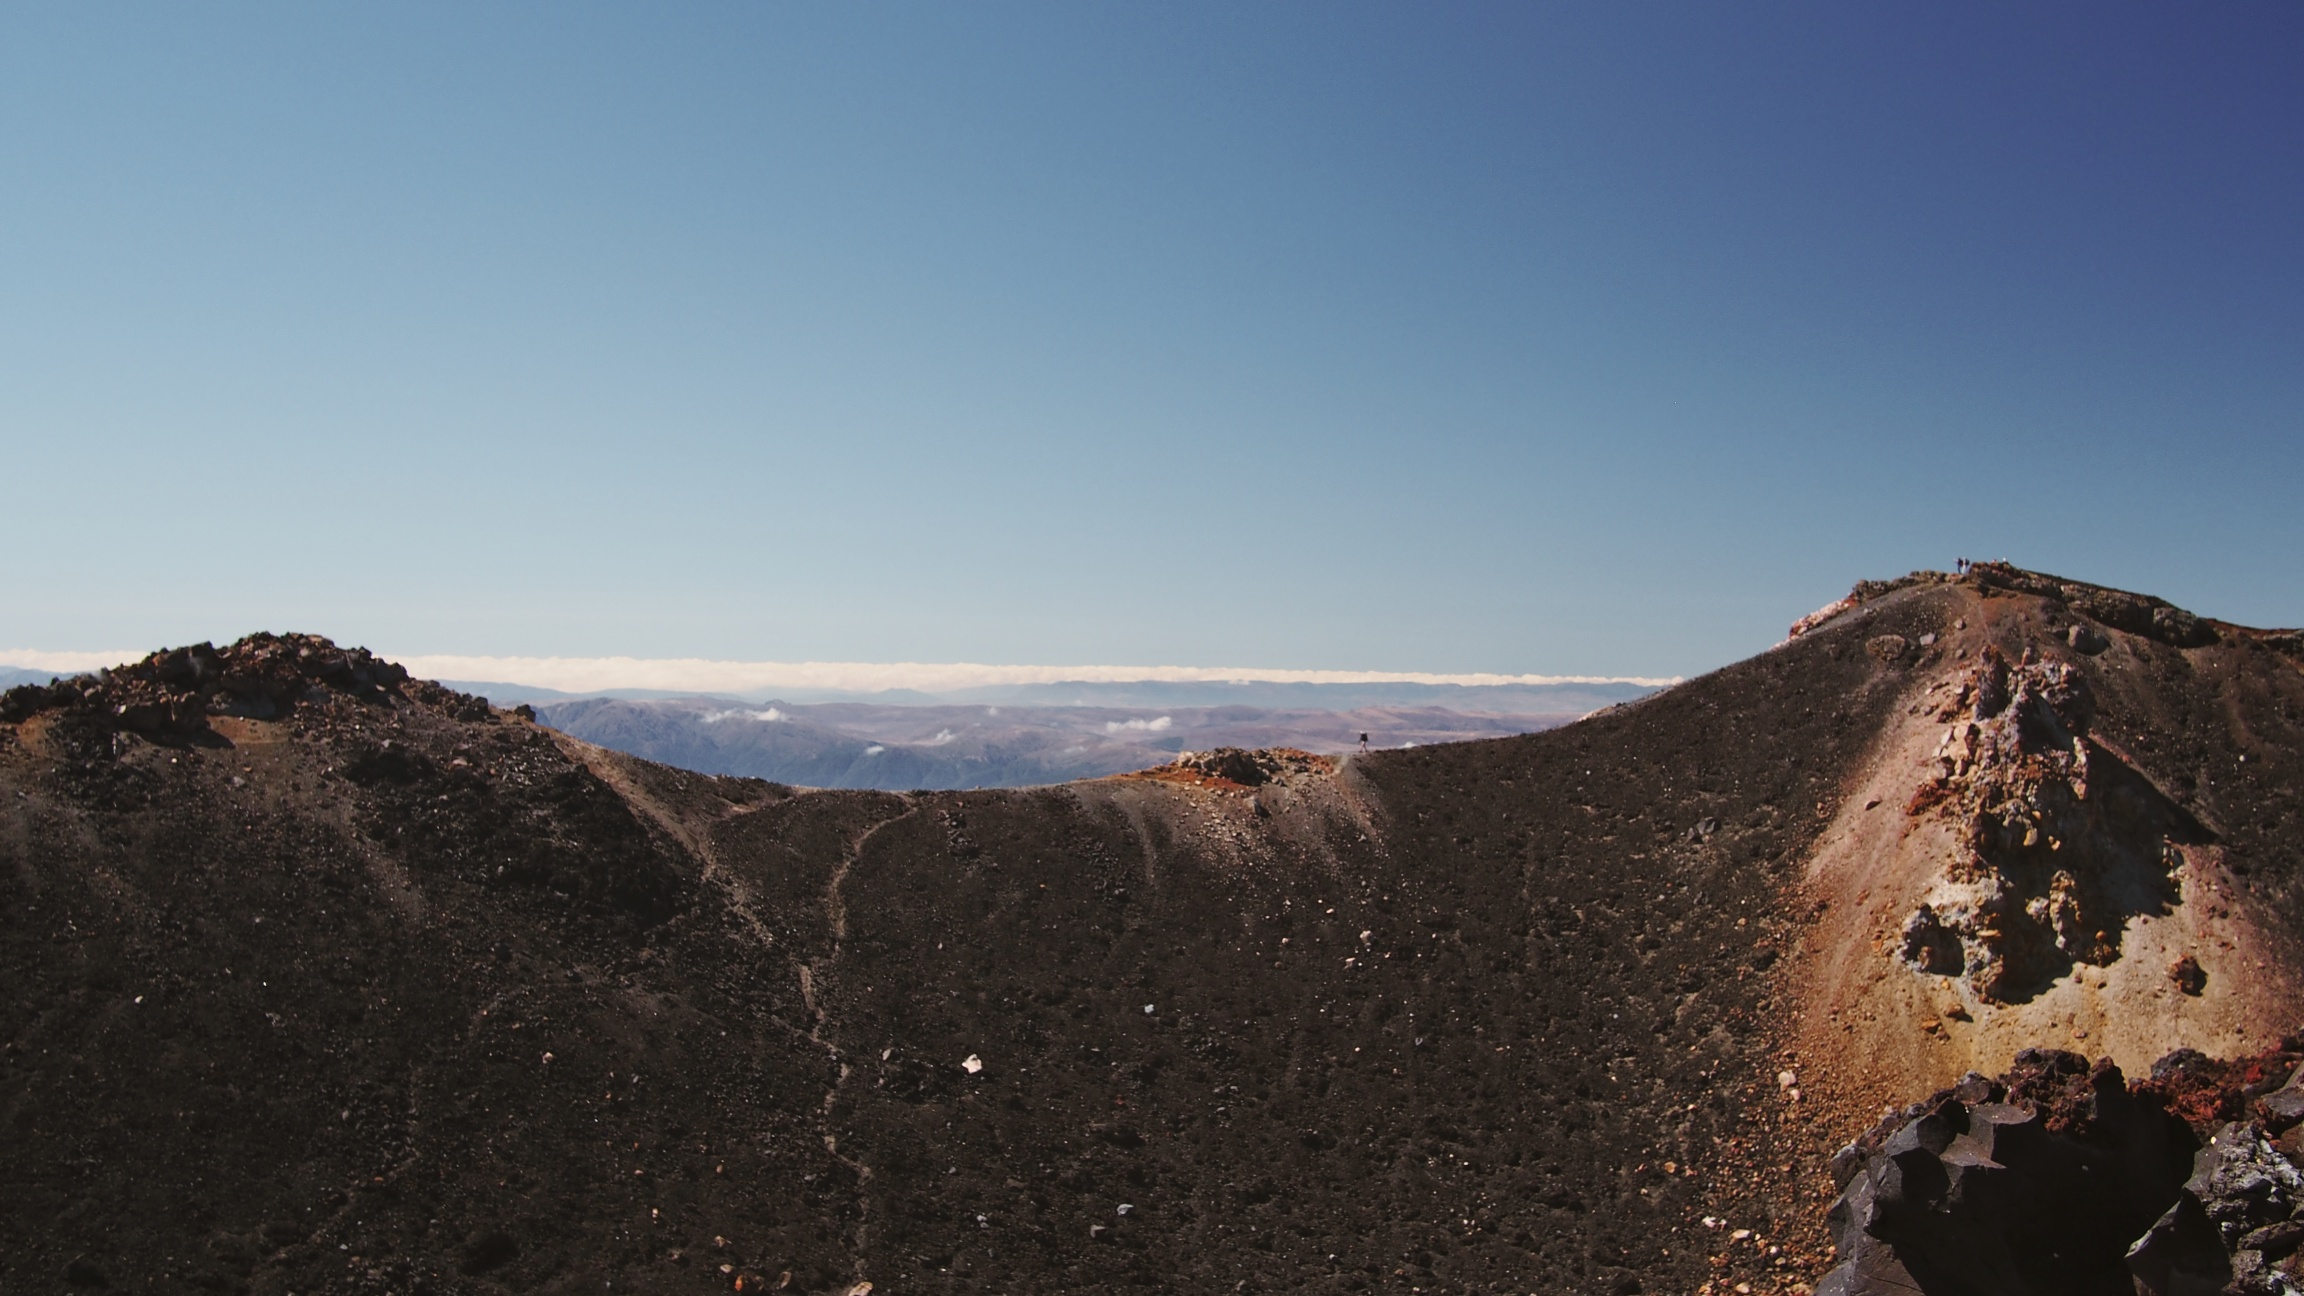 You can actually trek around Mount Ngauruhoe once you reach the summit. Can you spot the lone hiker?